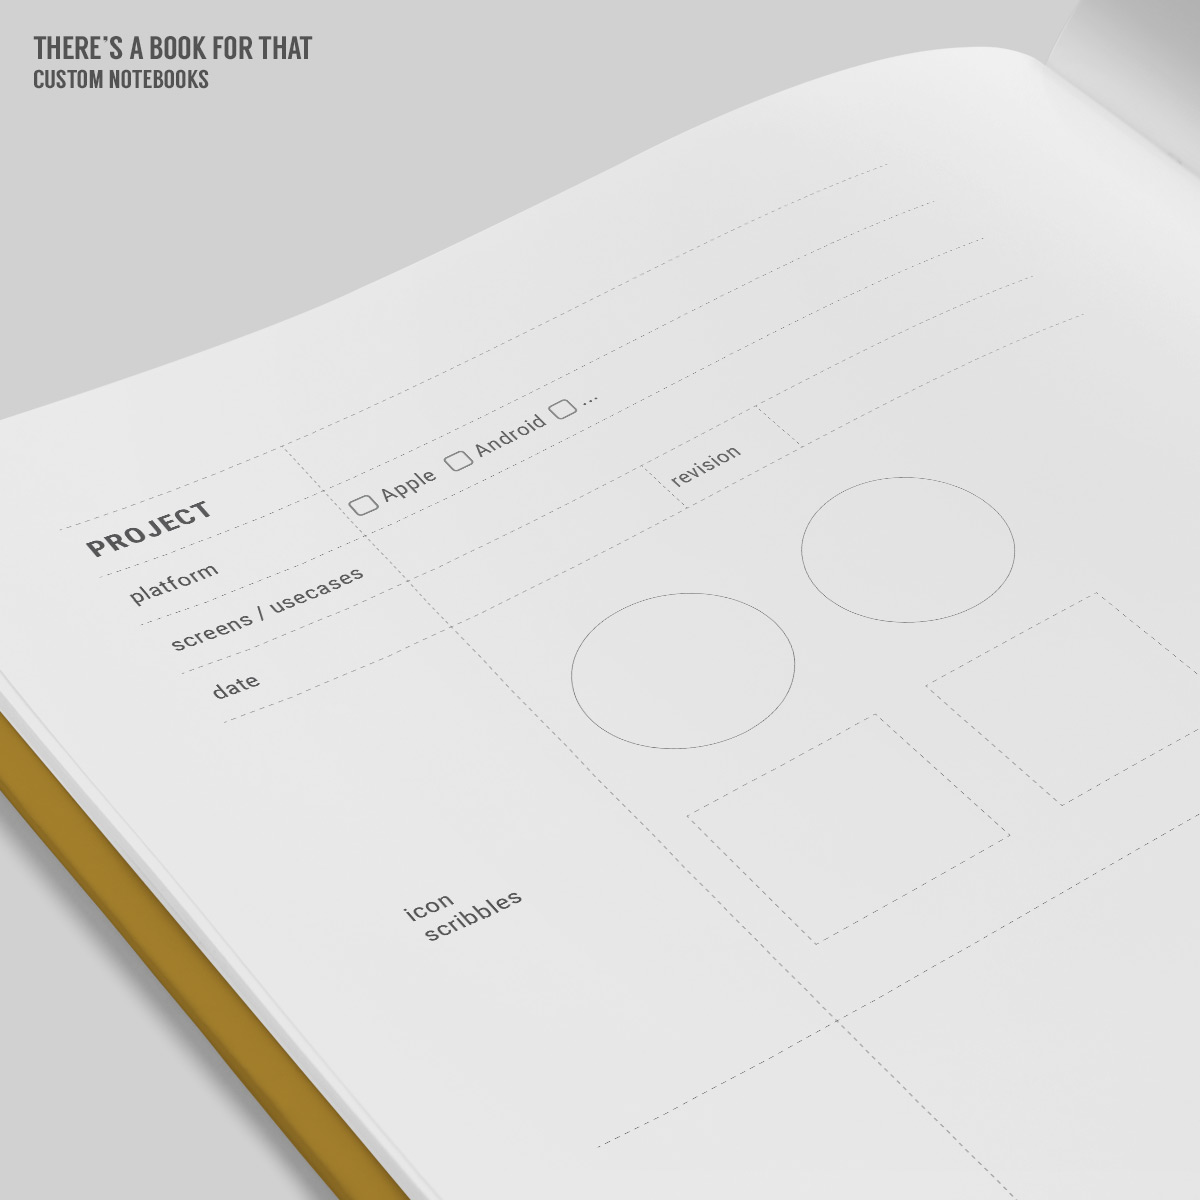 This notebook apps universal features smartphone/tablet/smartwatch mocks with extended screen, portrait/landscape, space to define usecases and extremely cool thumbnail sketching & flowcharts.